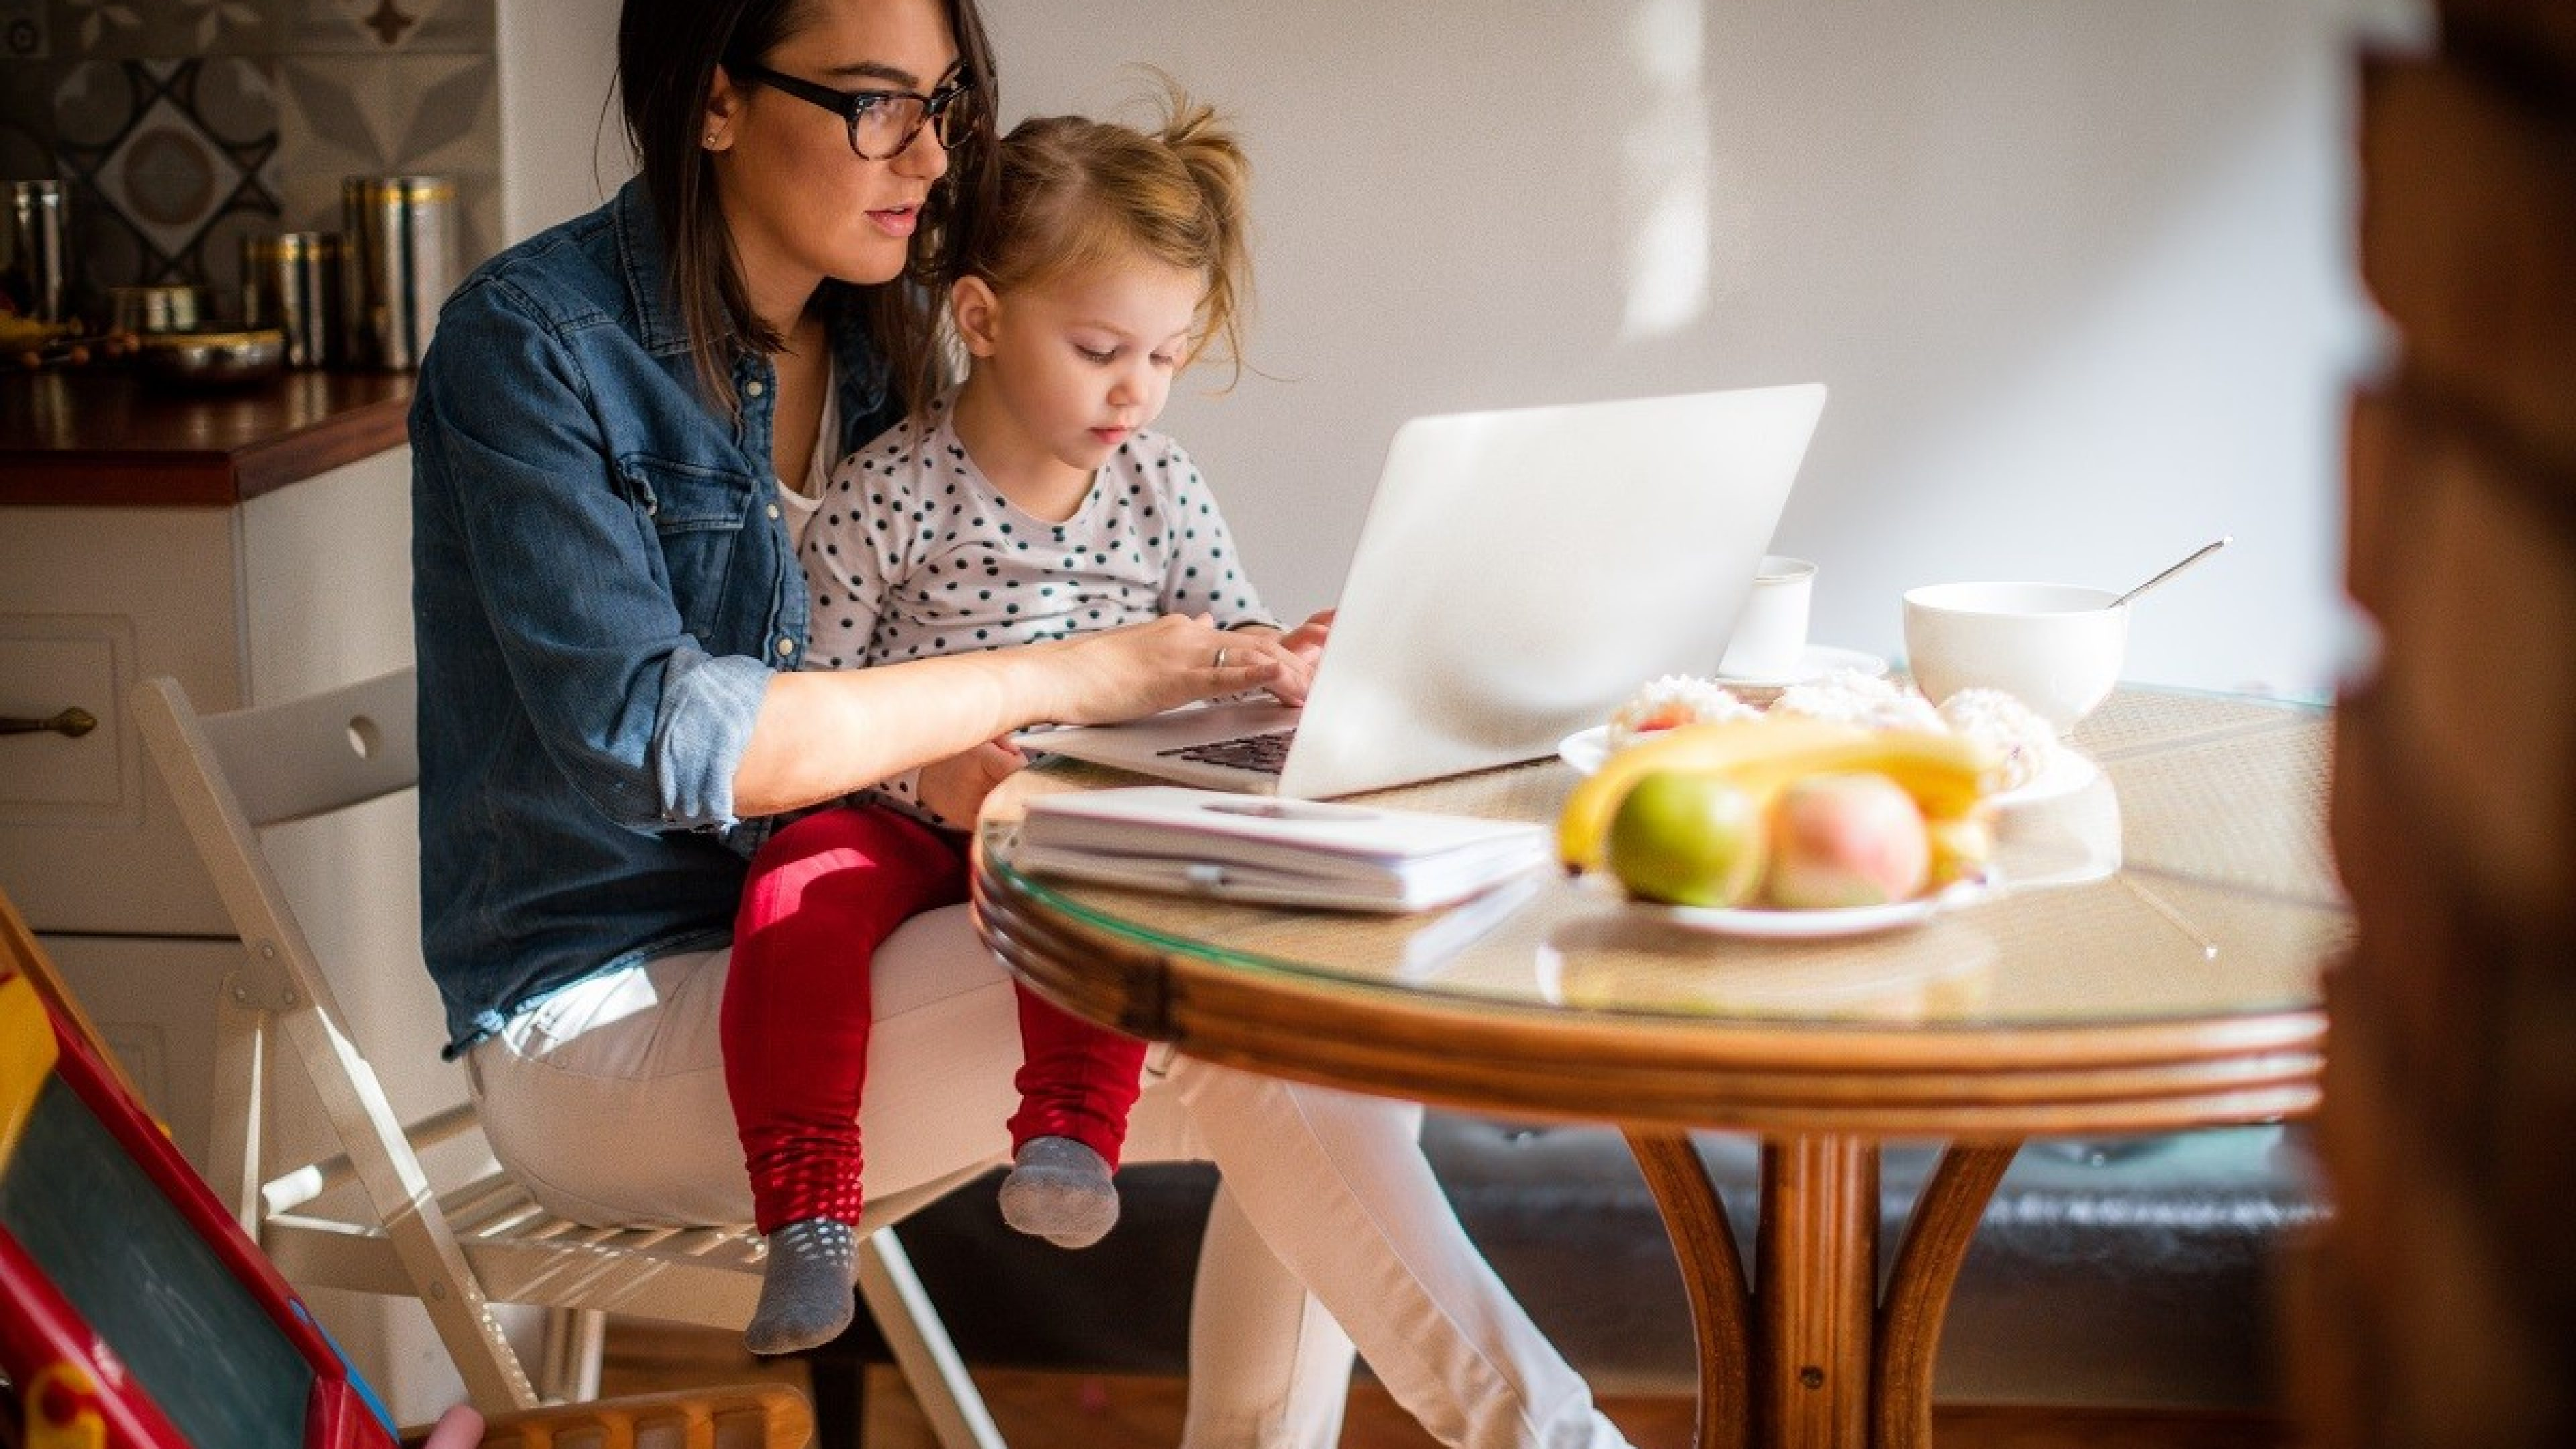 Photo of a little girl trying to help mom who is working on a computer at their dining table